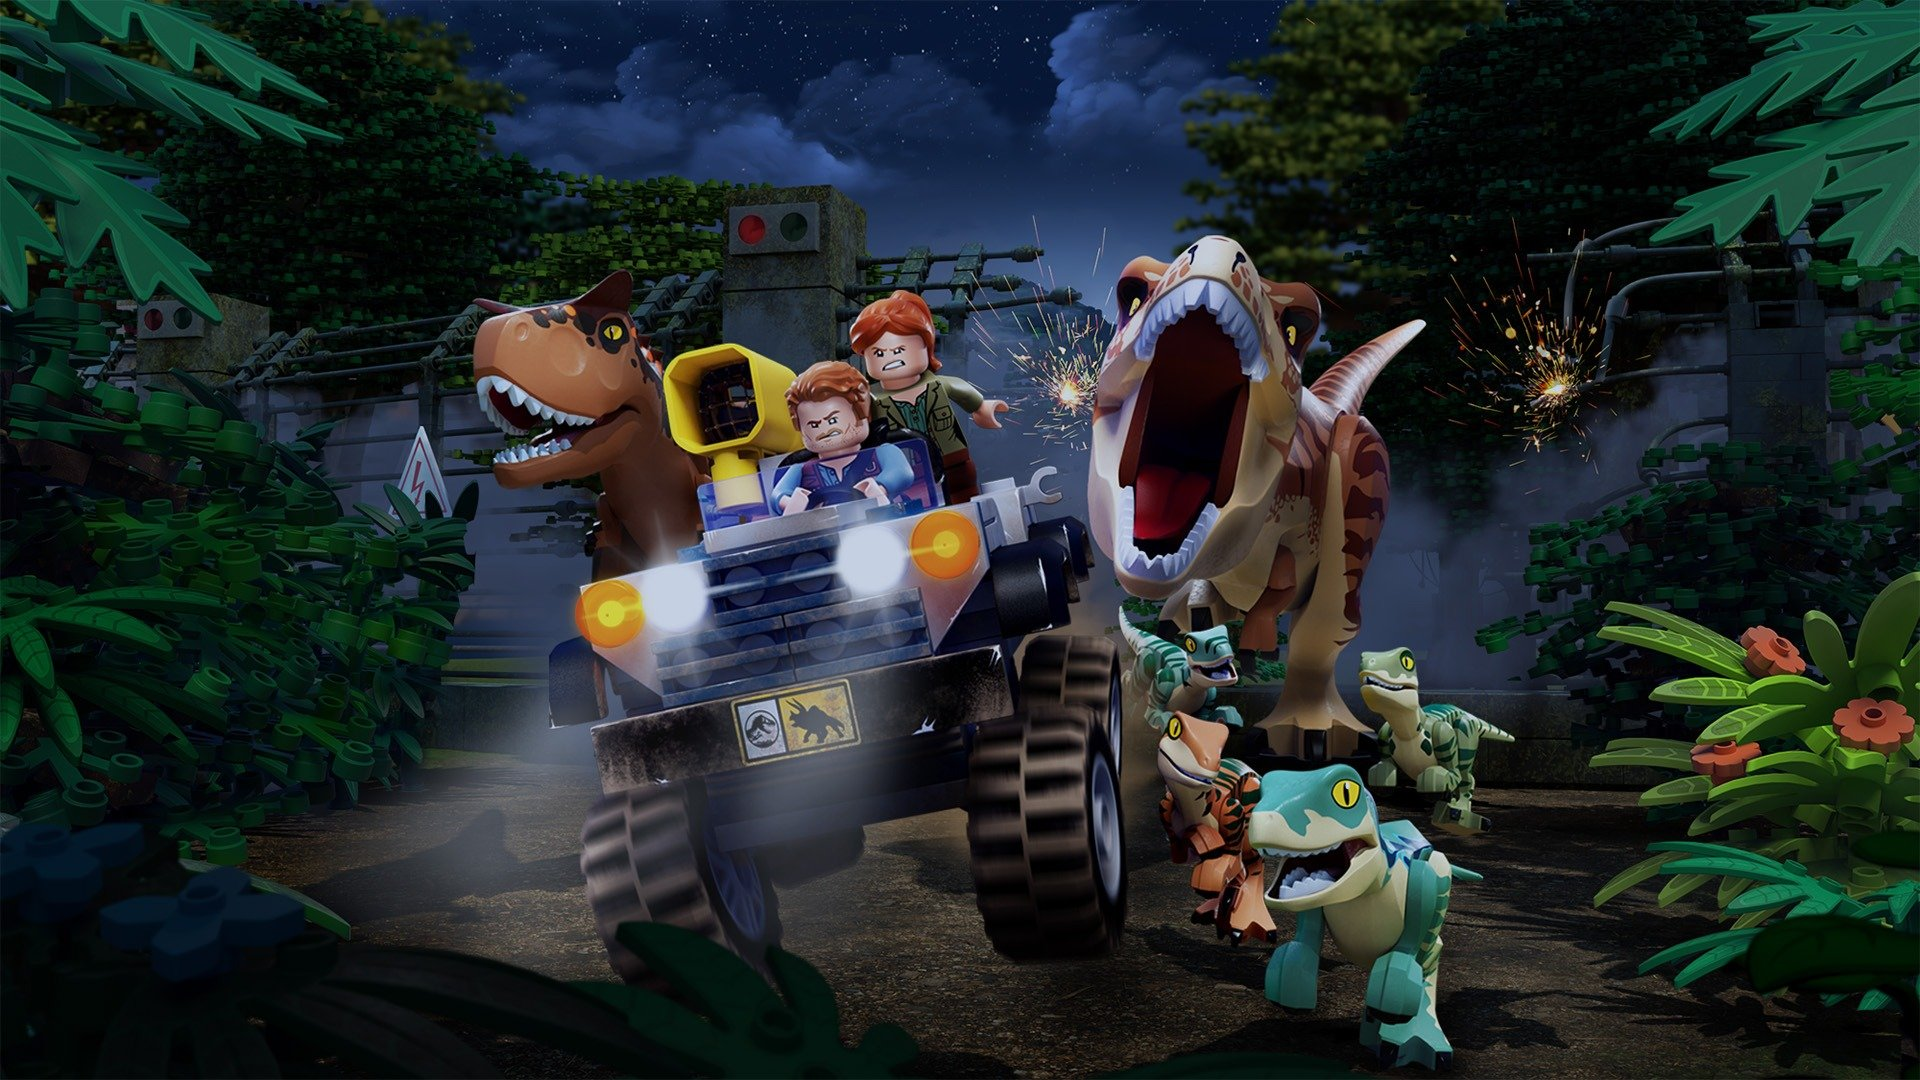 Lego Jurassic World: The Secret Exhibit - sv.tal